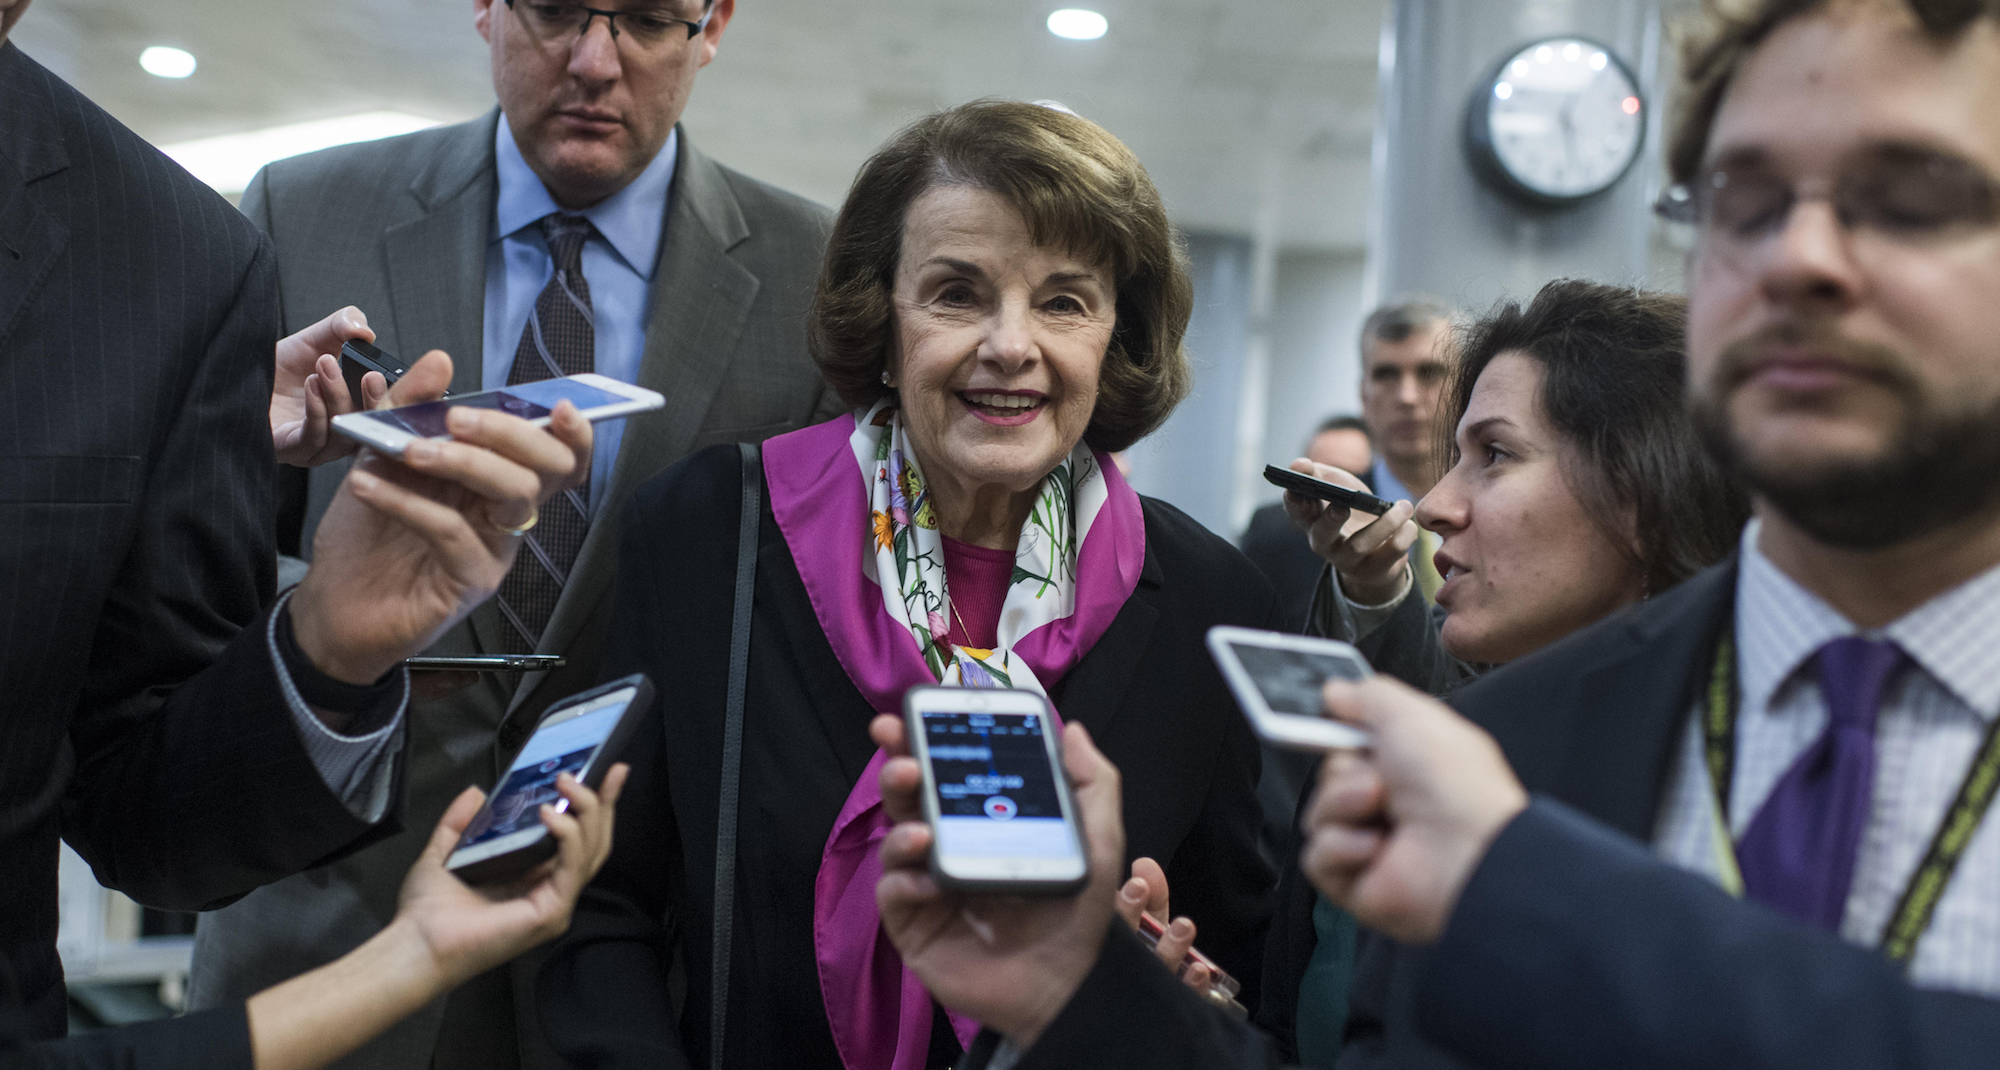 Trump slams 'Sneaky Dianne Feinstein' for releasing Fusion founder's testimony